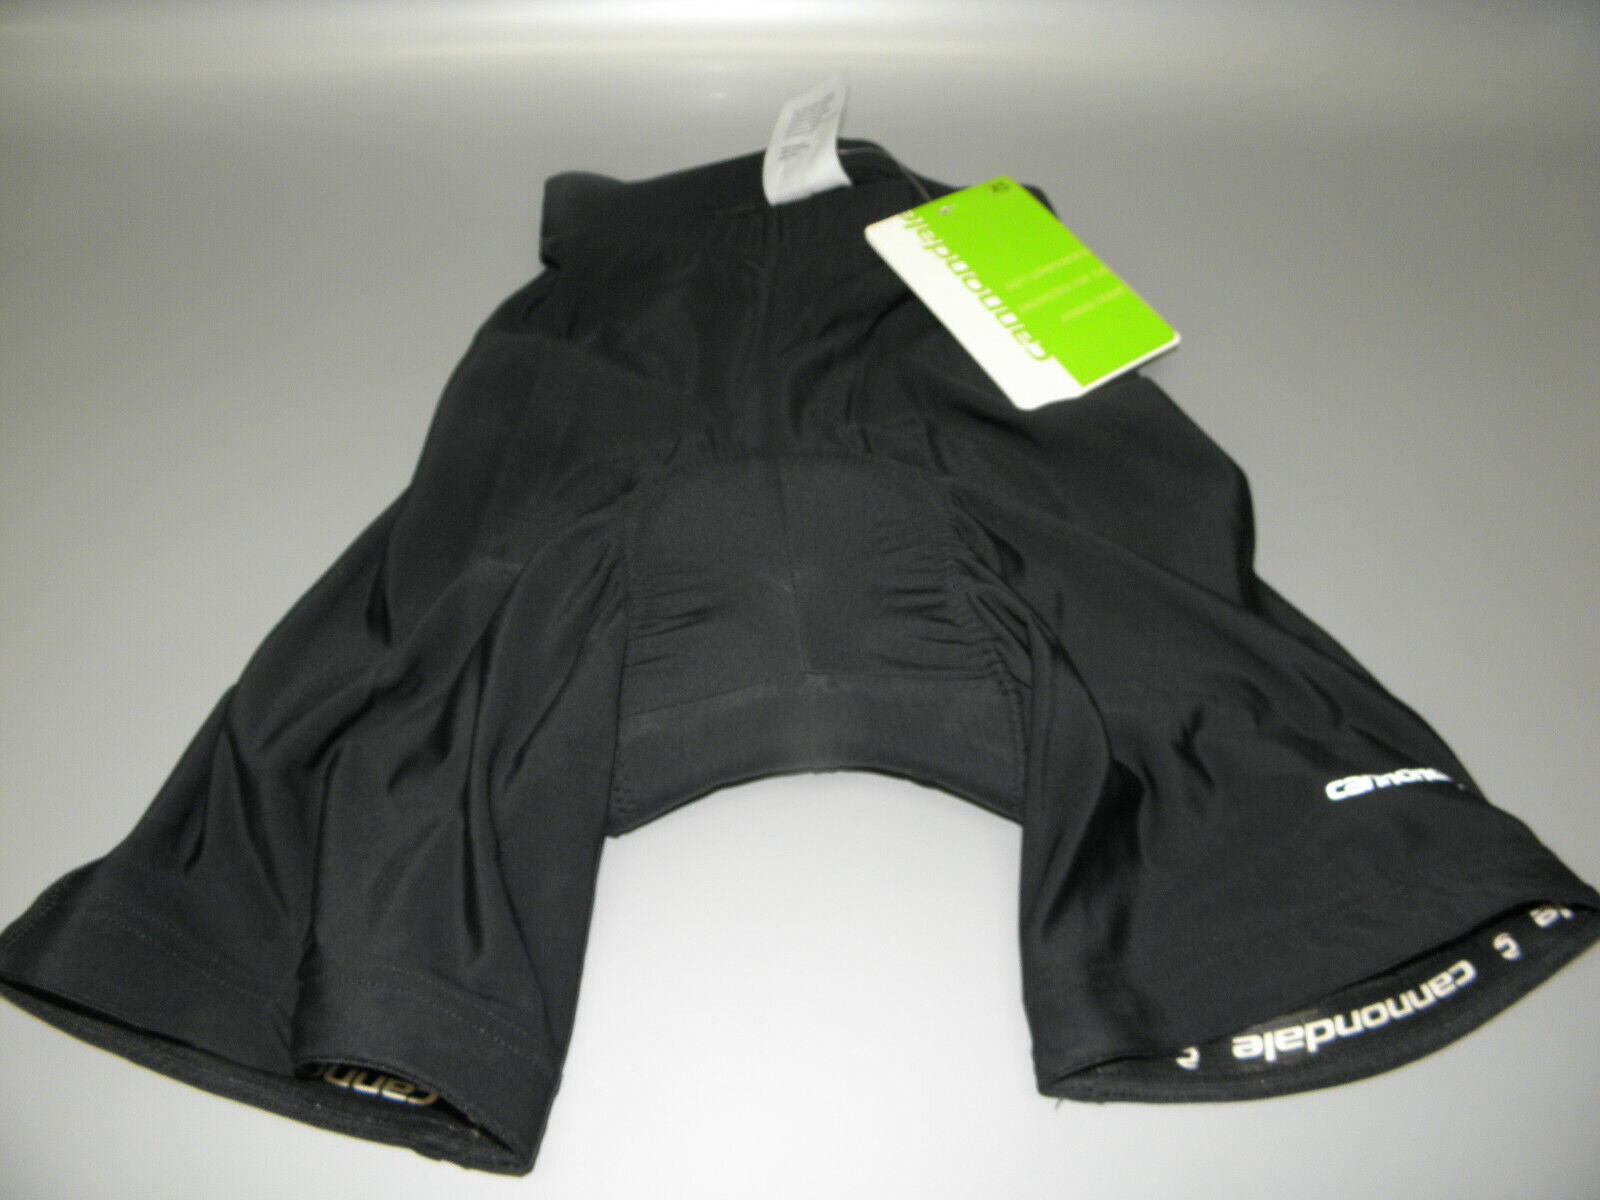 CANNONDALE WOMEN'S BICYCLE RIDE SHORTS XS BLACK NEW WITH TAG